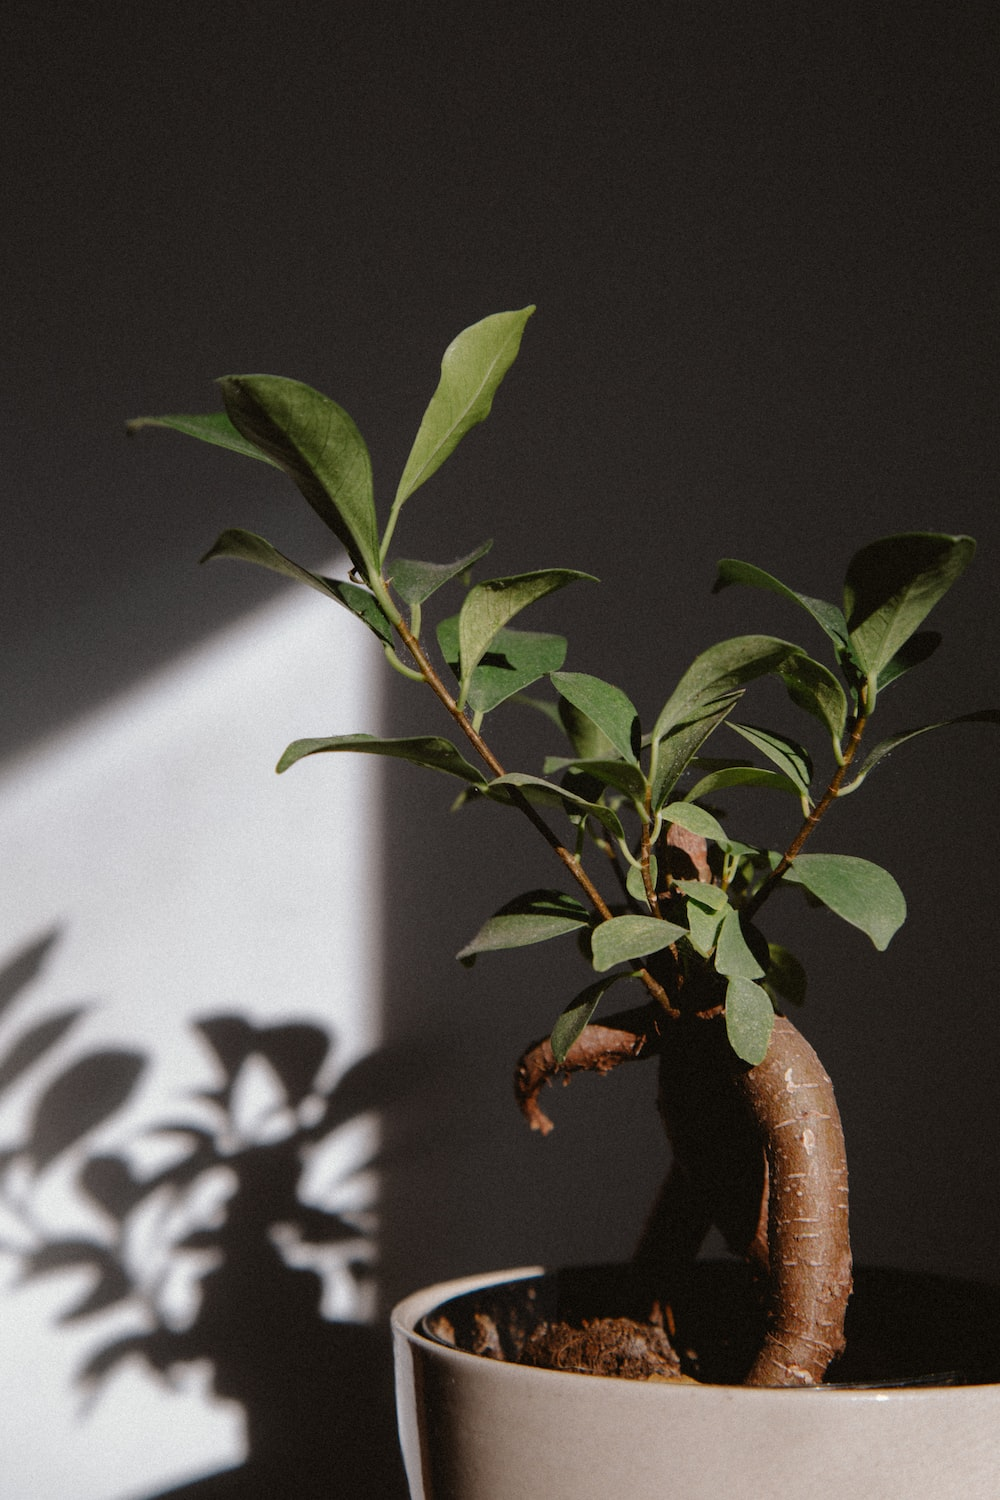 green-leafed potted plant